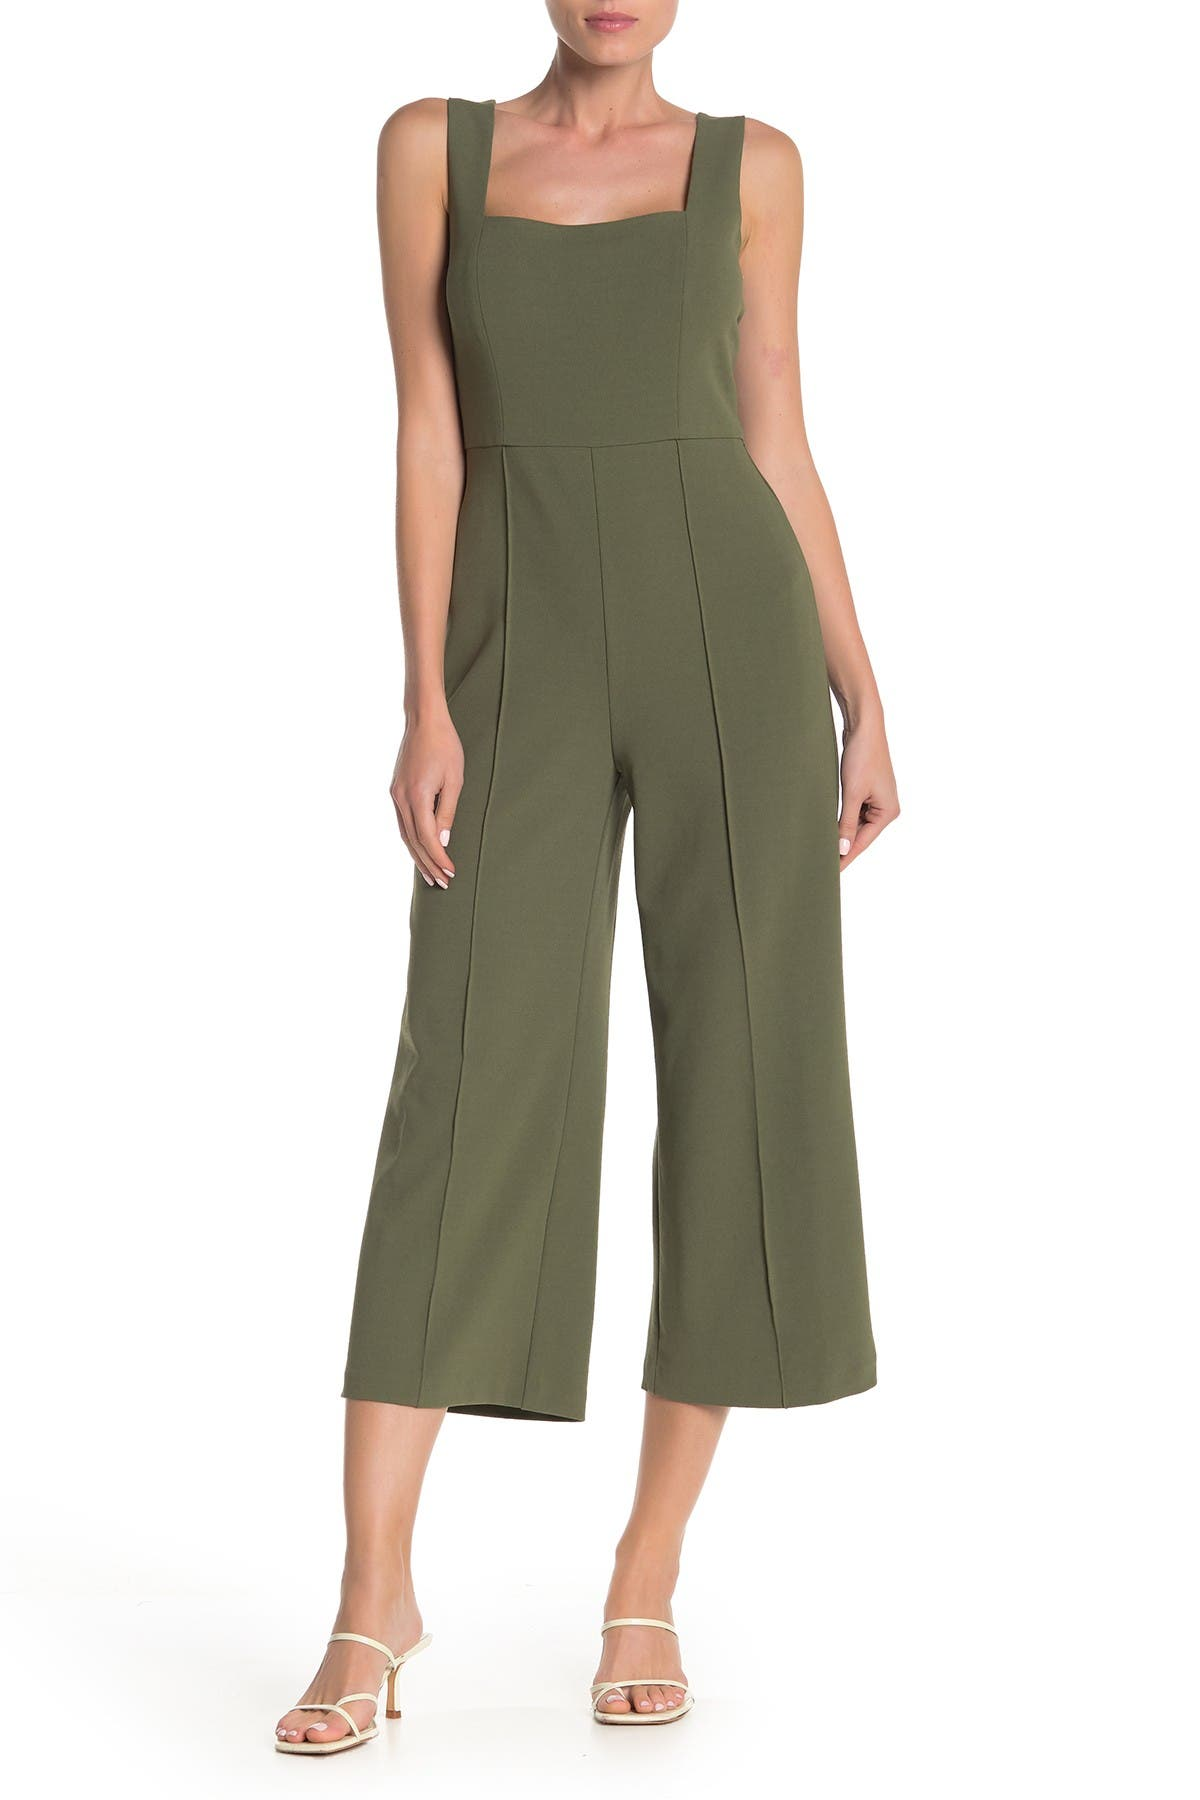 Image of Donna Morgan Square Neck Sleeveless Crepe Wide Leg Jumpsuit